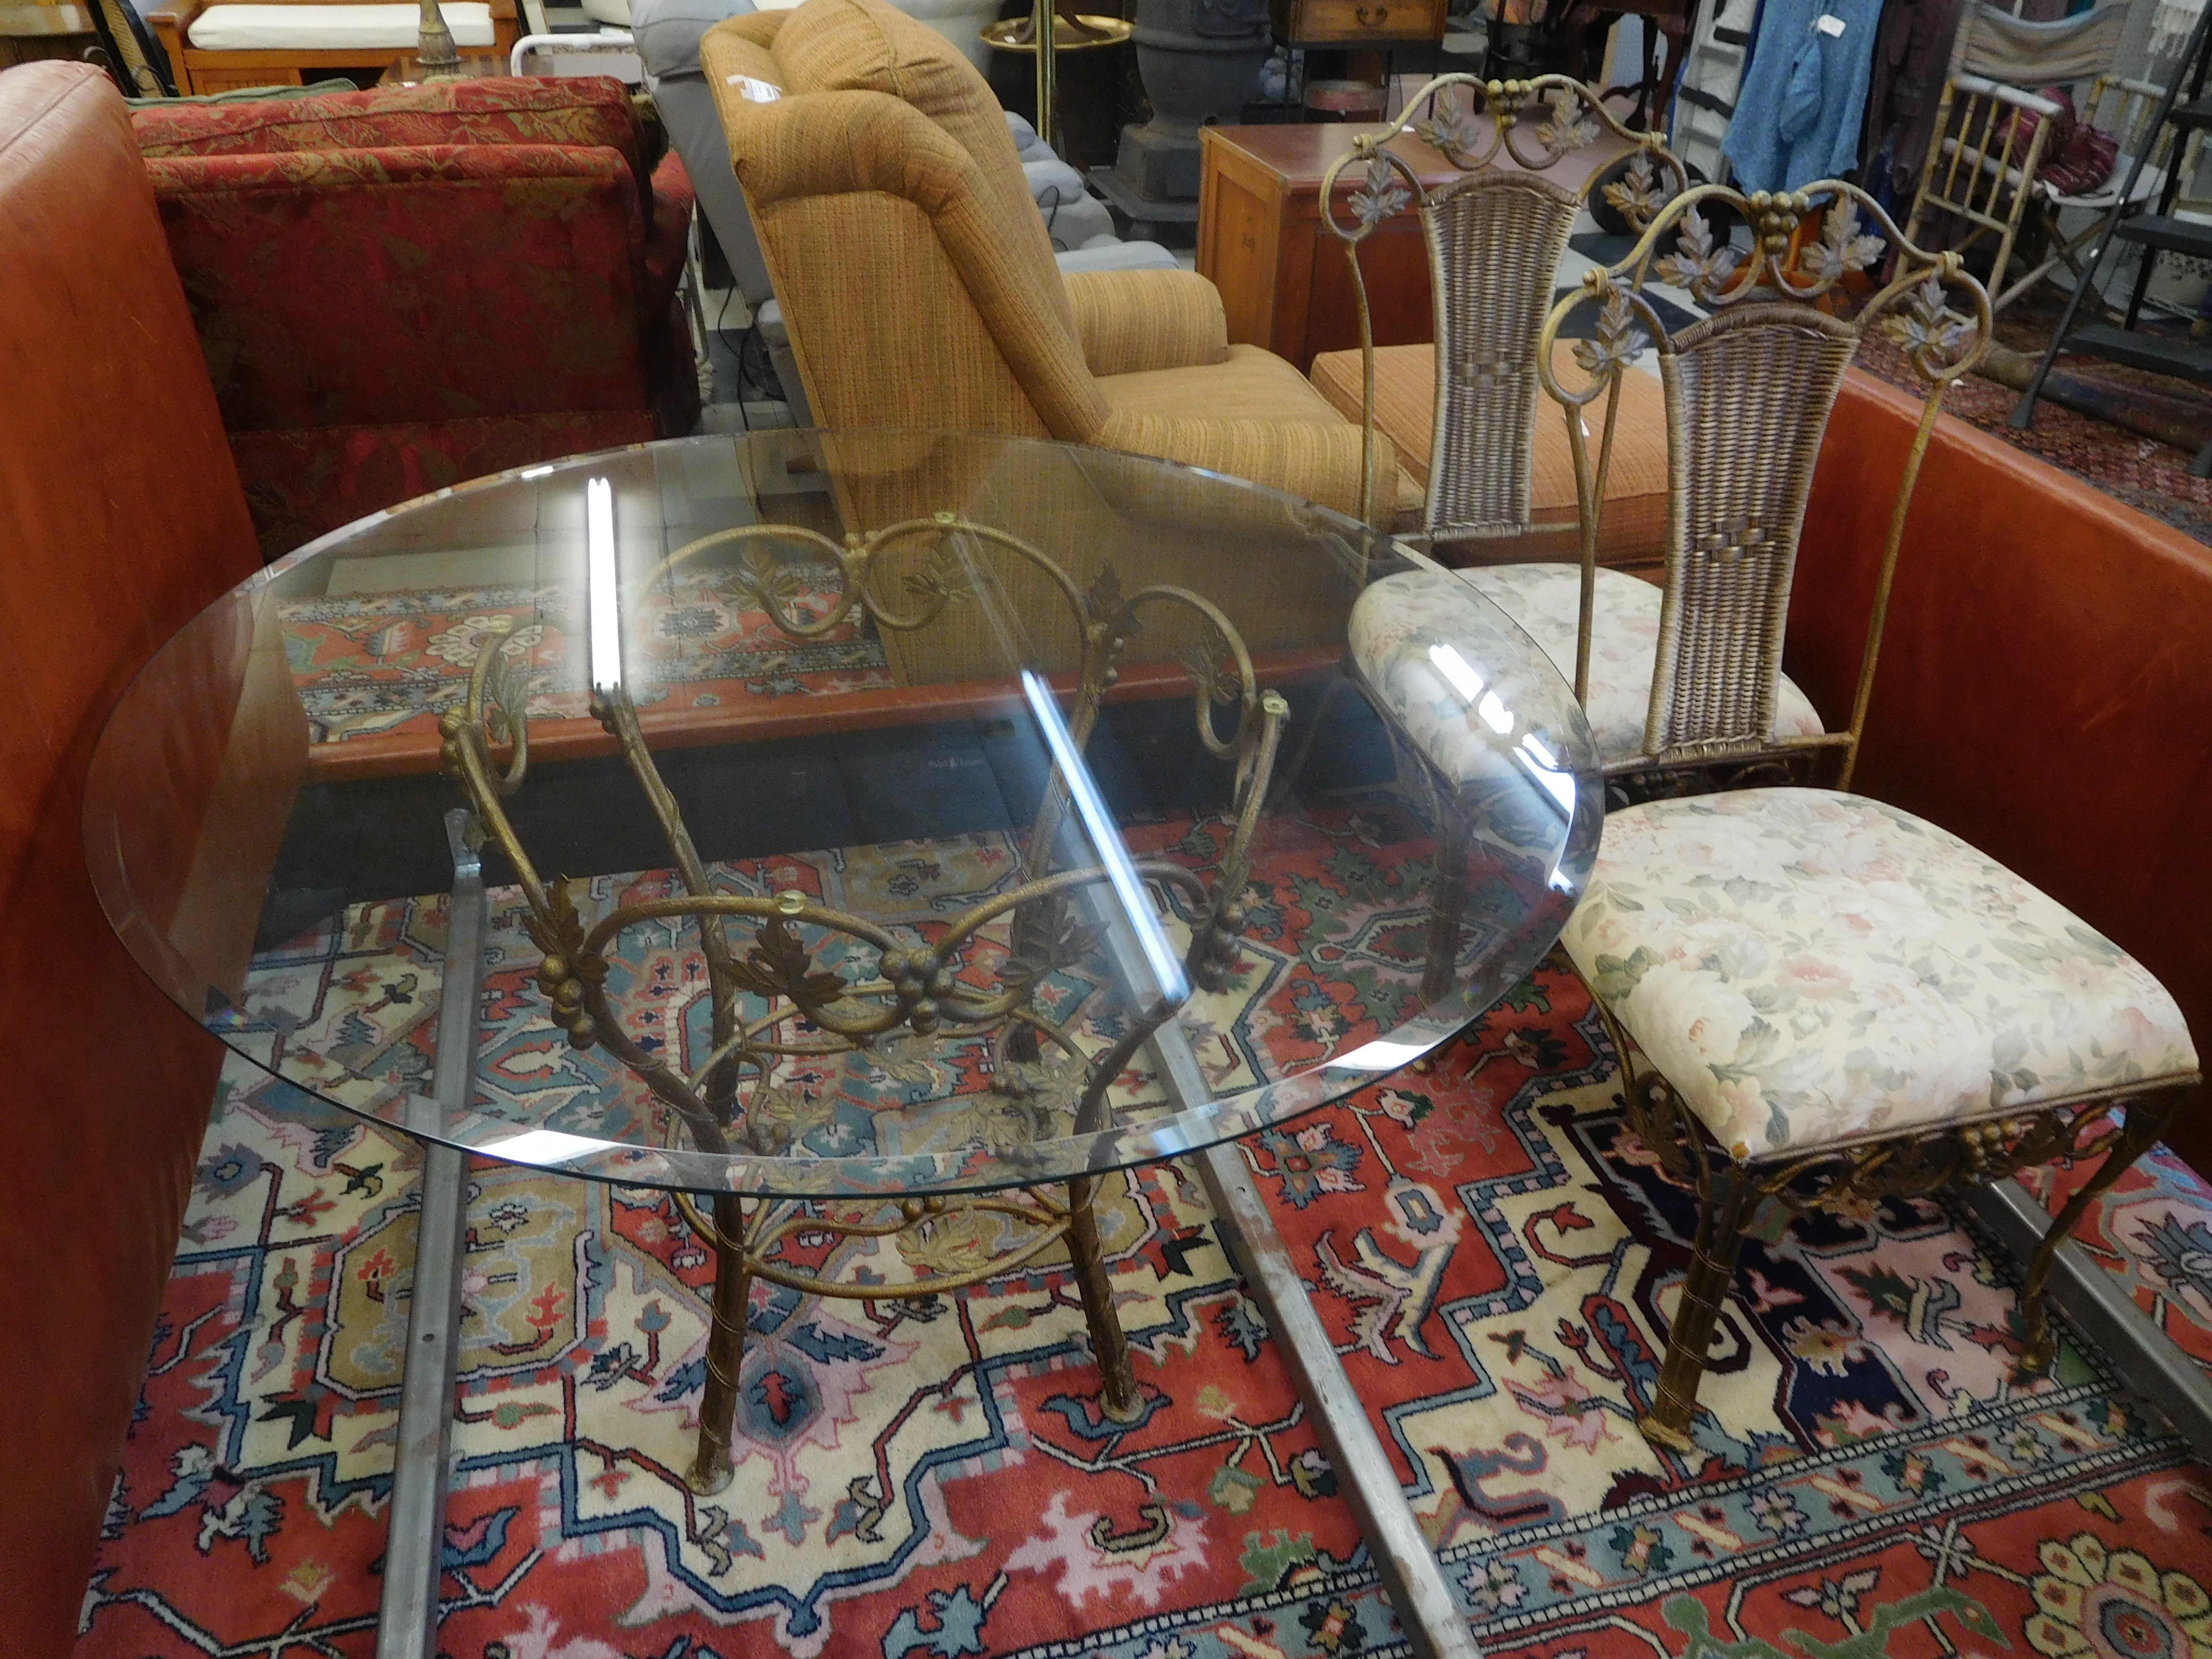 Glass Top Table with Gold Leafed Wrought Iron Base and 4 Chairs